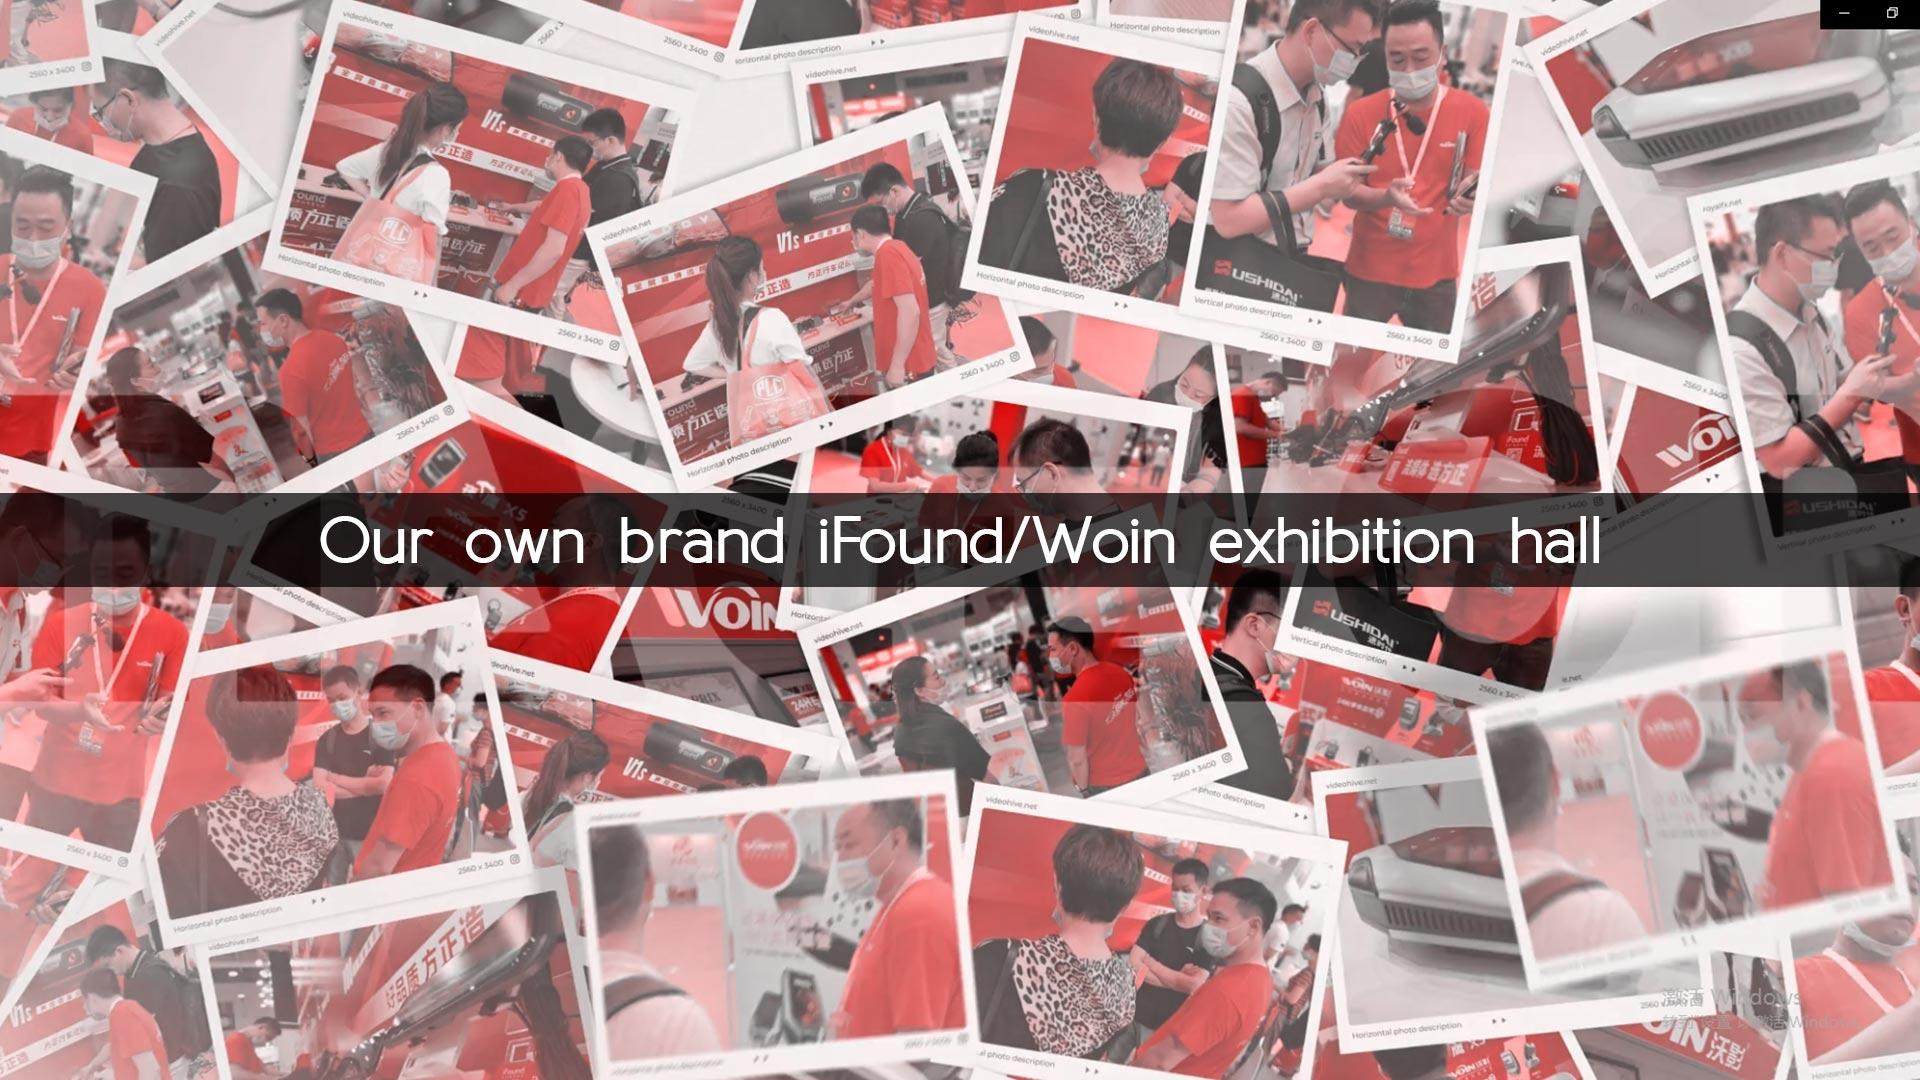 Our own brand iFound/Woin exhibition hall